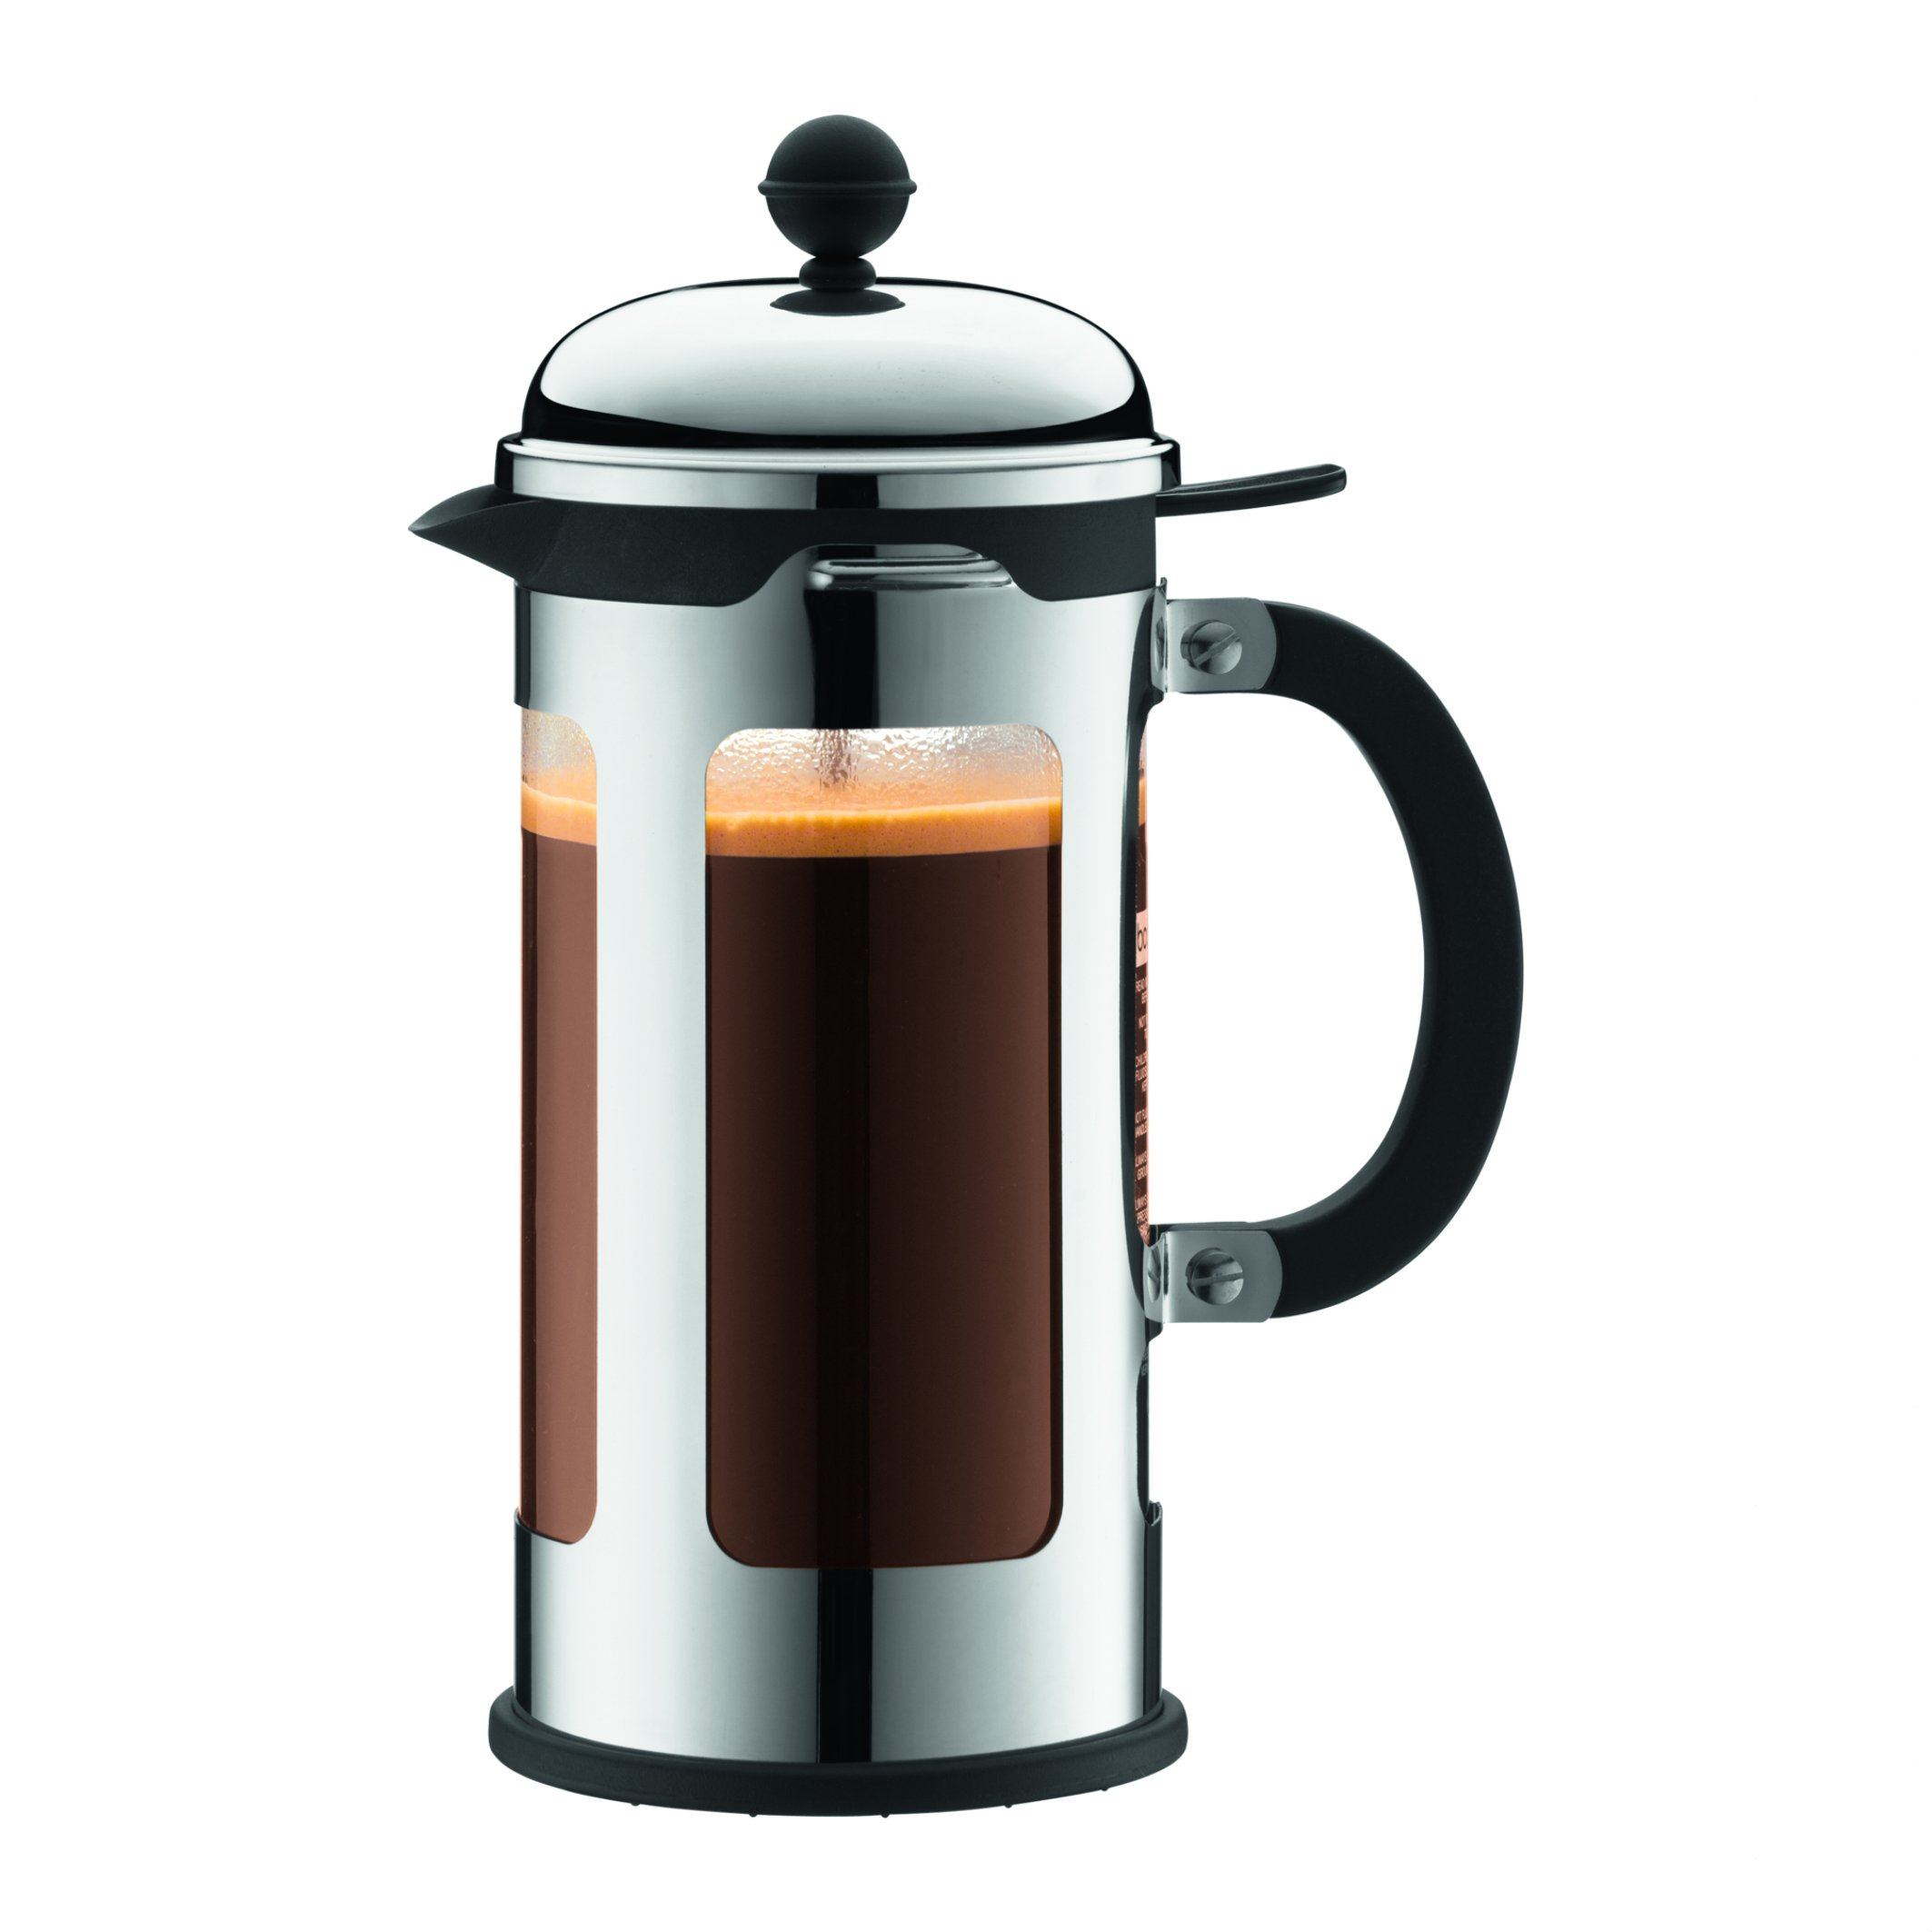 Bodum Chambord 8-Cup French Press Coffee Maker, Silver by Bodum